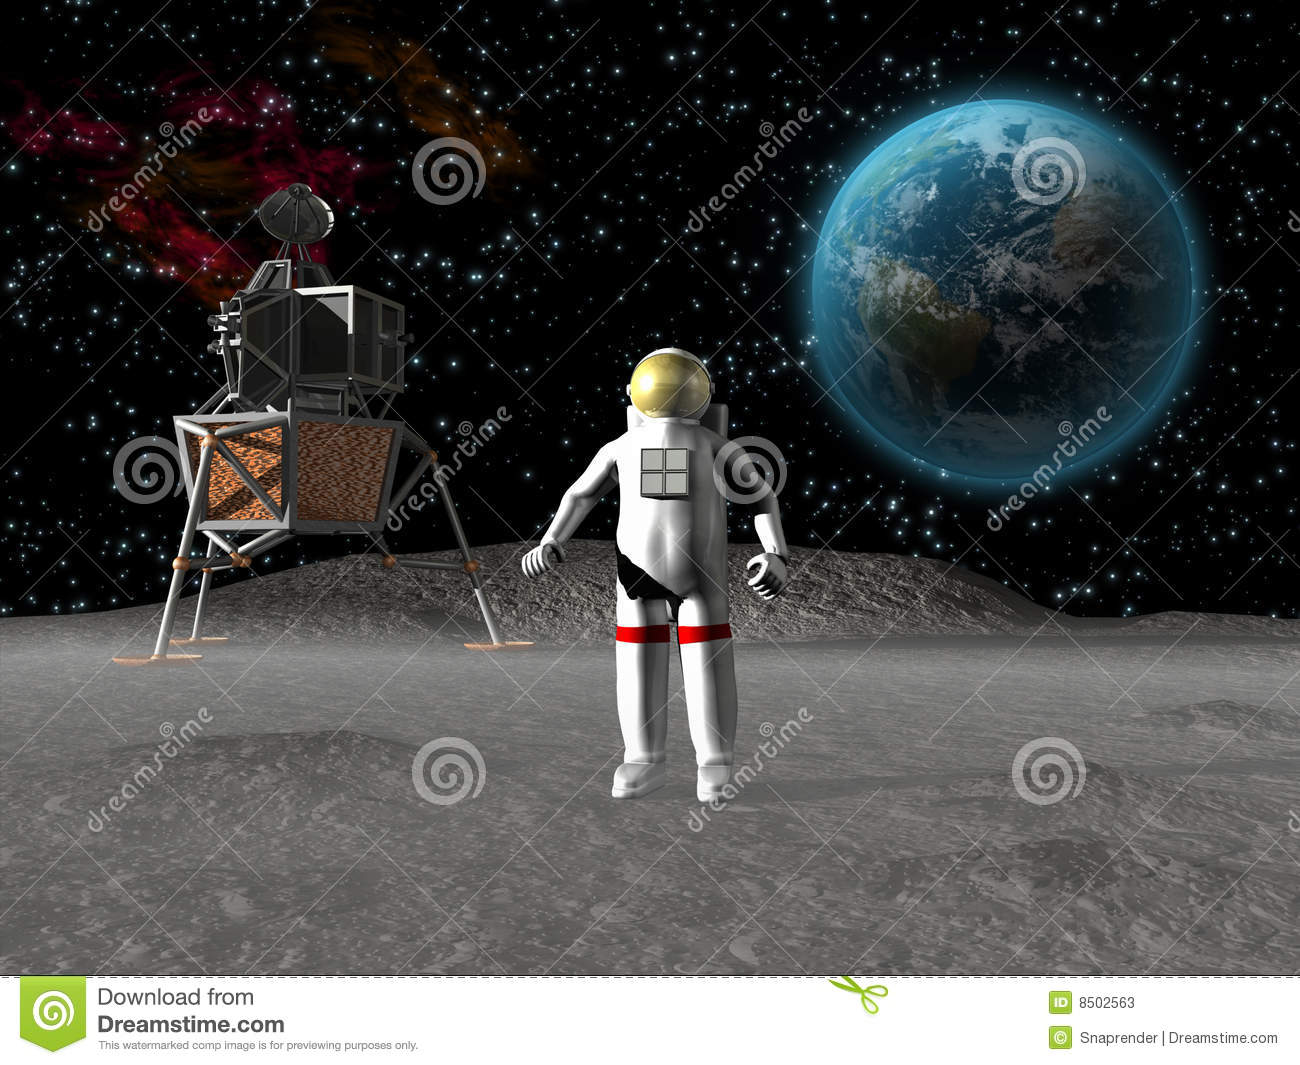 astronaut on moon earth background - photo #13